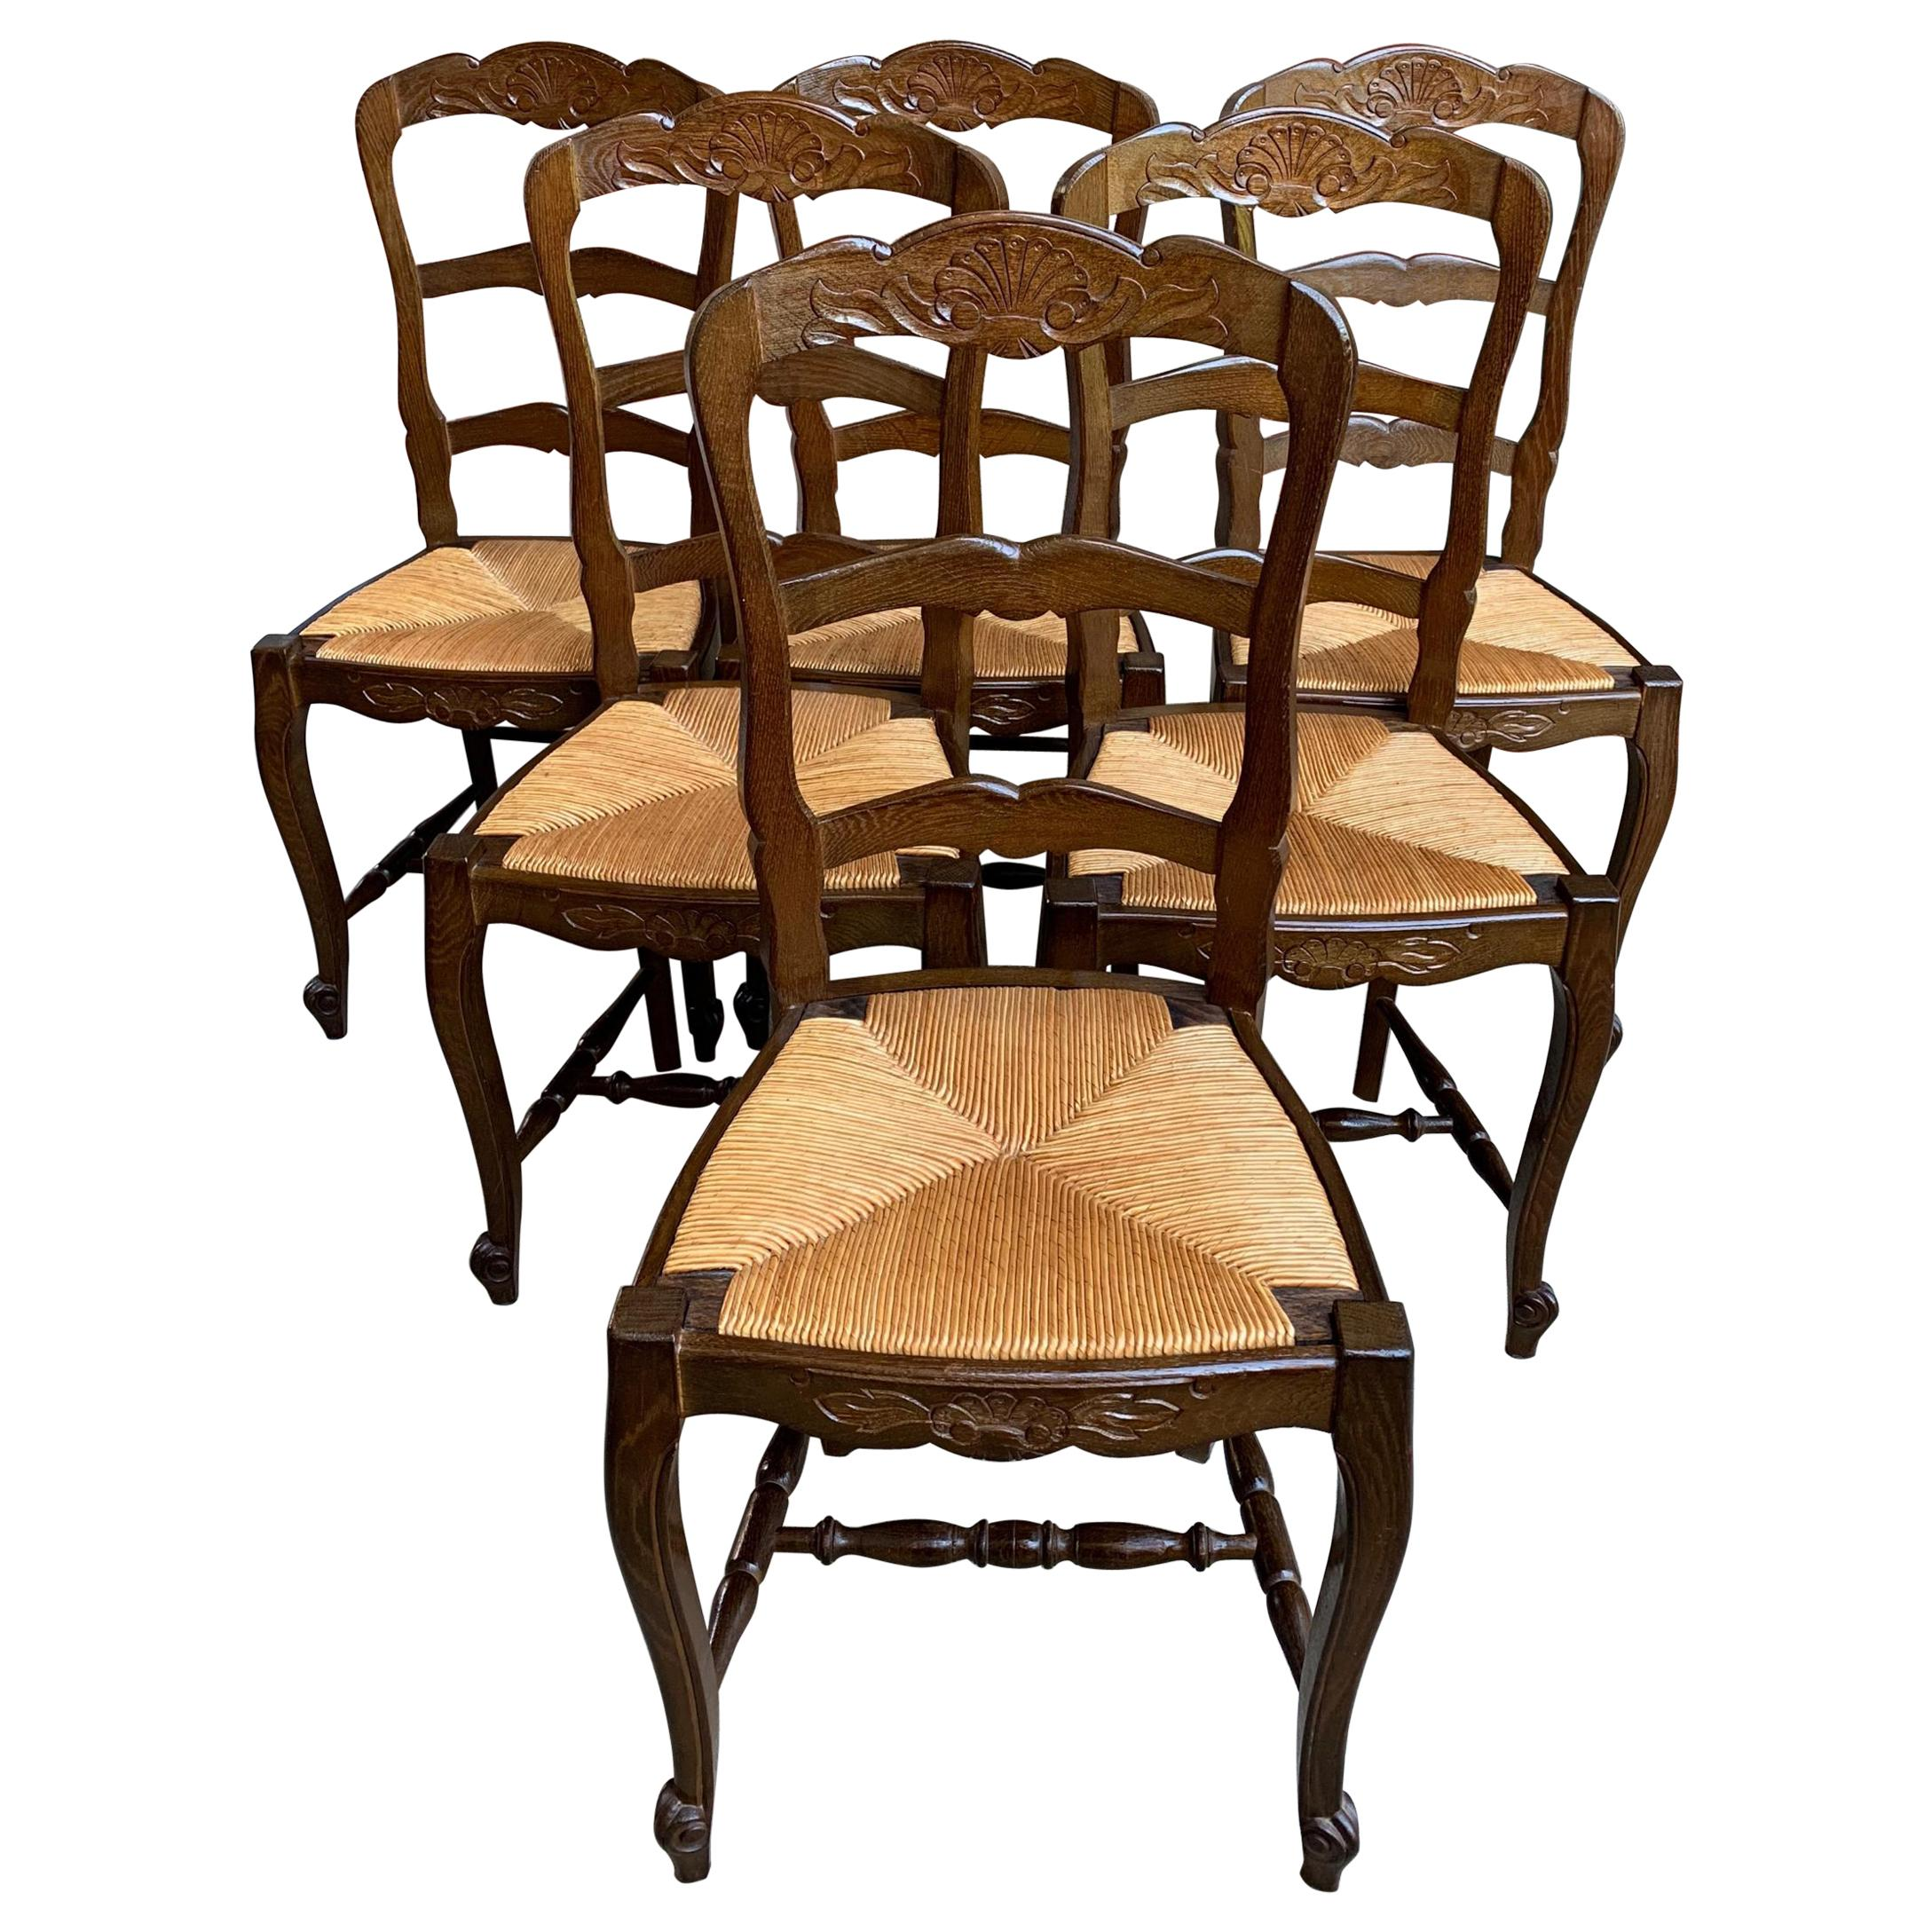 Set of 6 Antique French Country Carved Oak Ladder Back Dining Chair Rush Seat